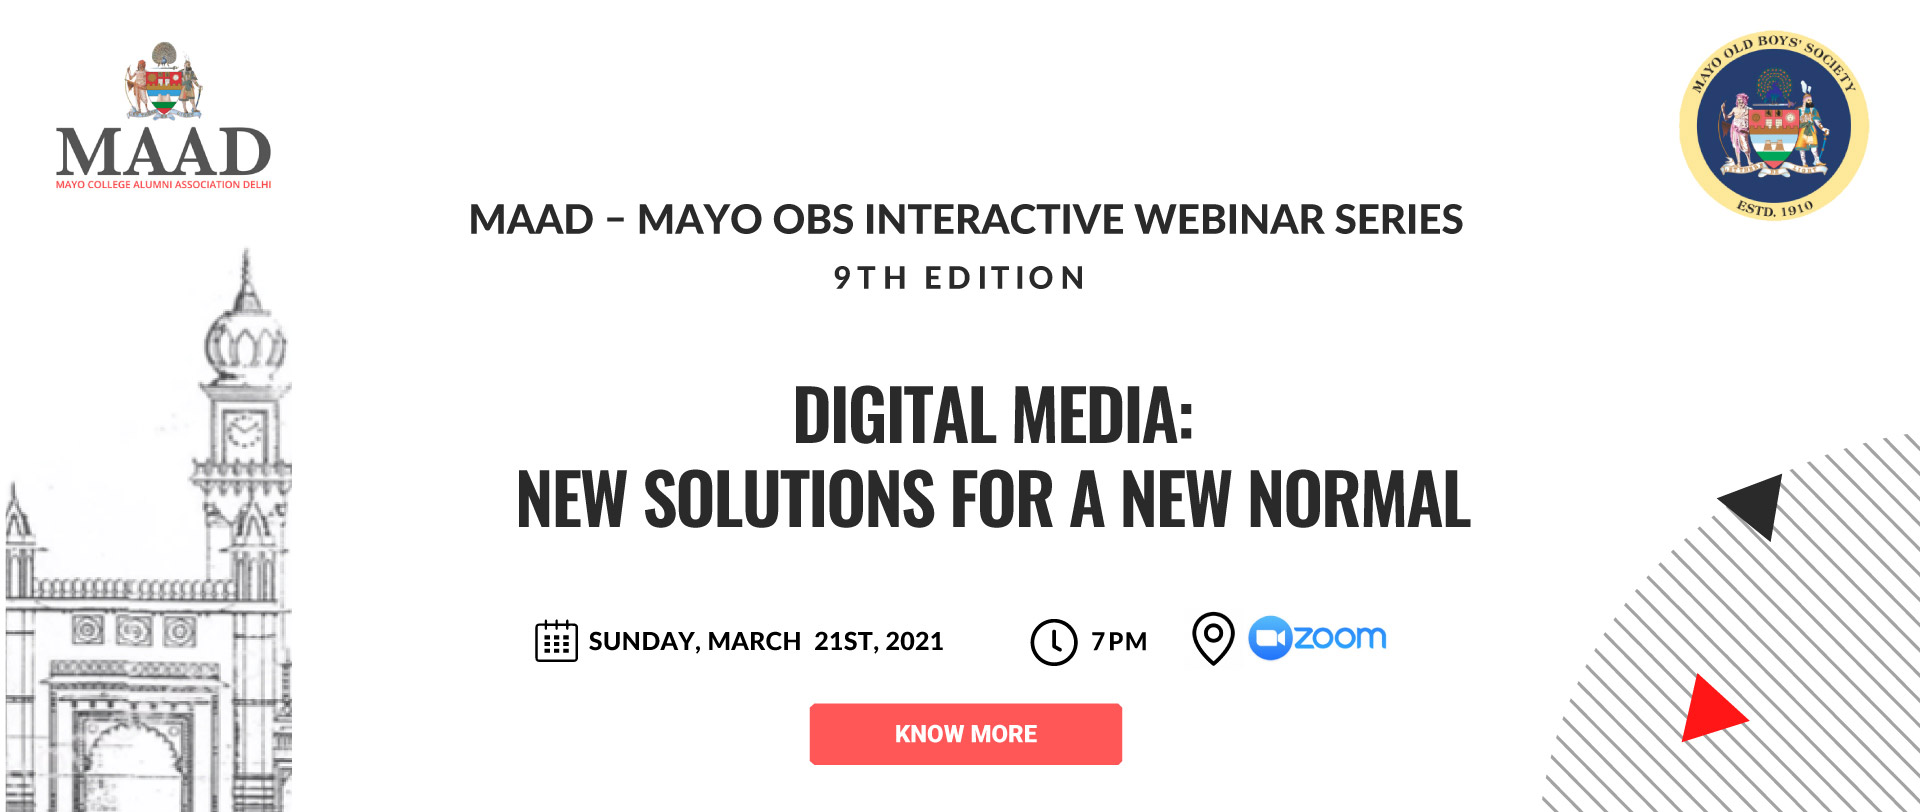 MAAD - Mayo OBS Interactive Webinar Series 9th Edition